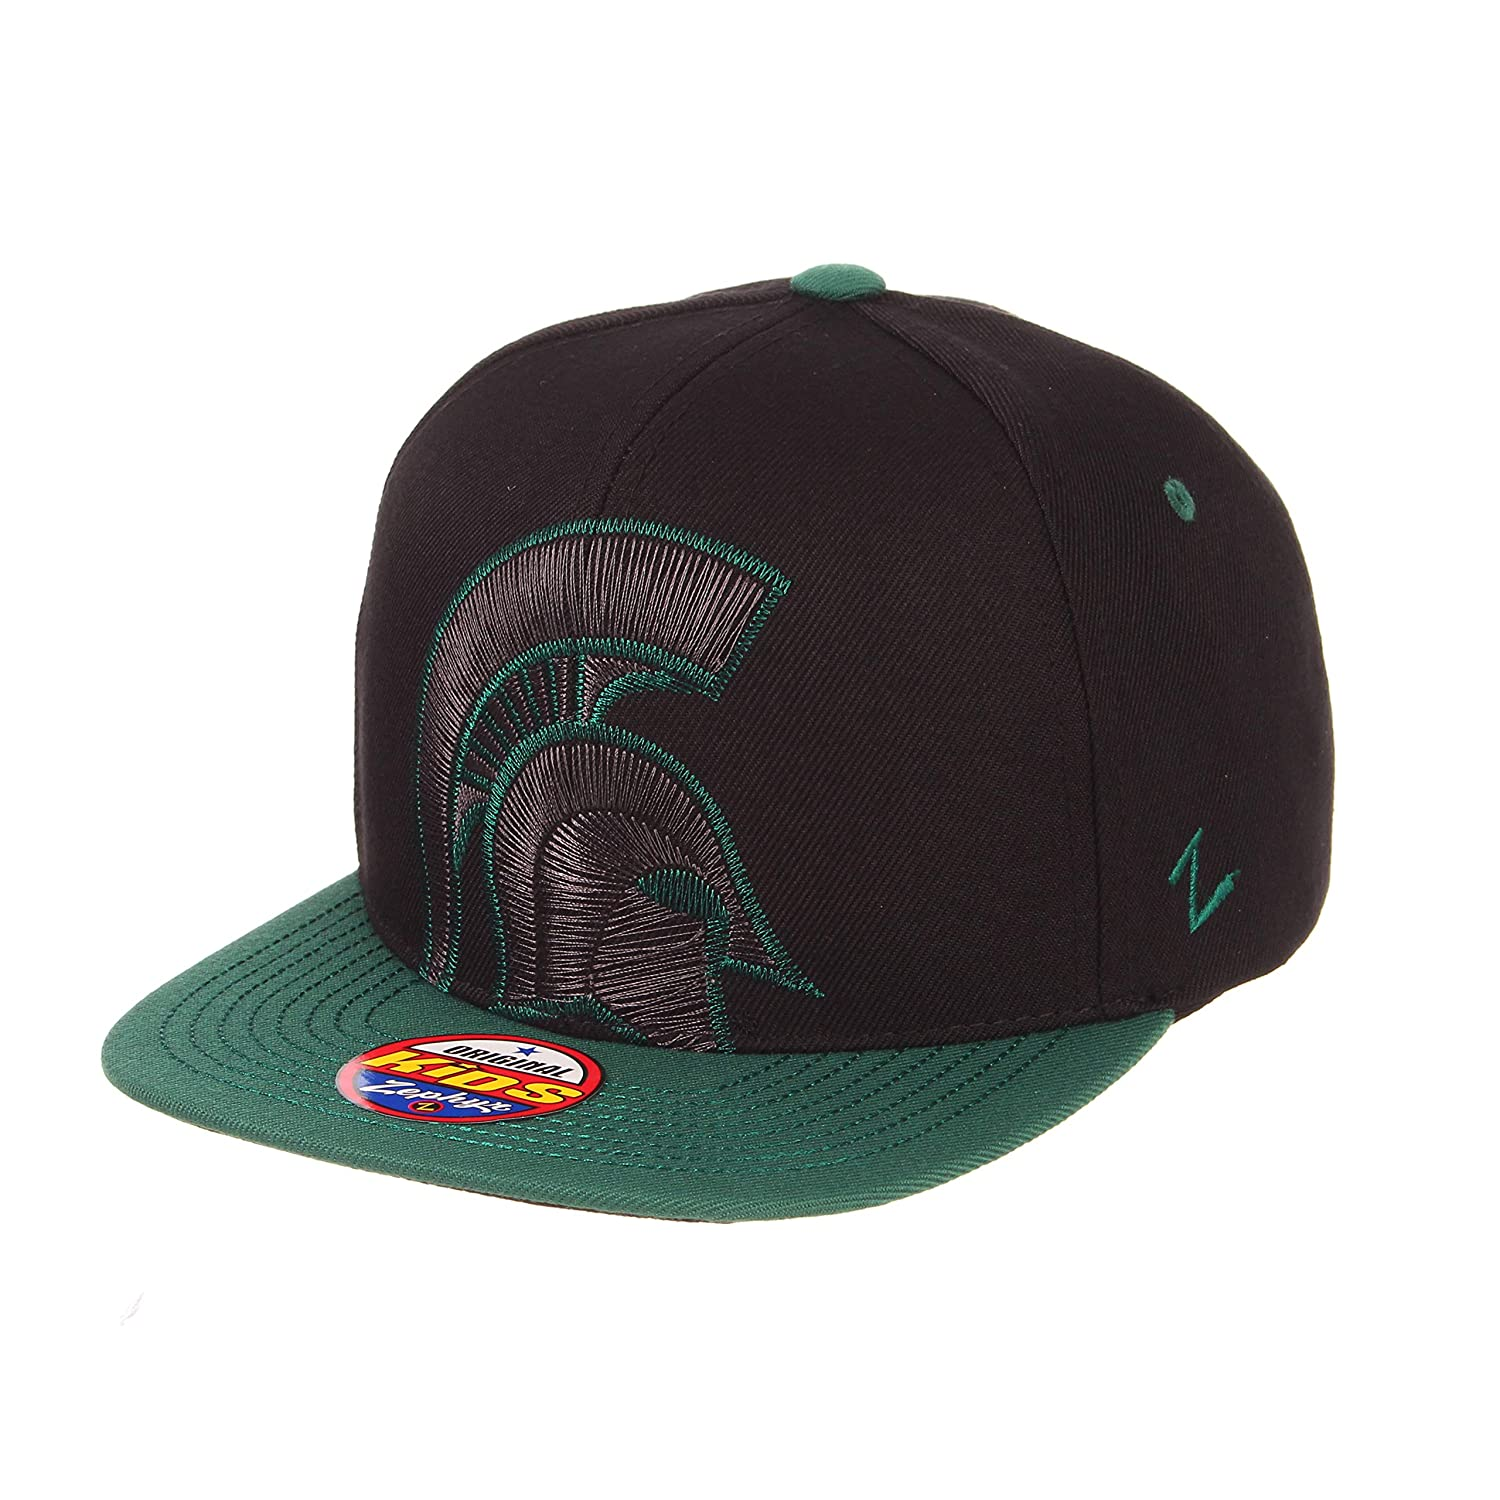 Youth Adjustable Black NCAA Zephyr Michigan State Spartans Youth Halftime Kid Hat